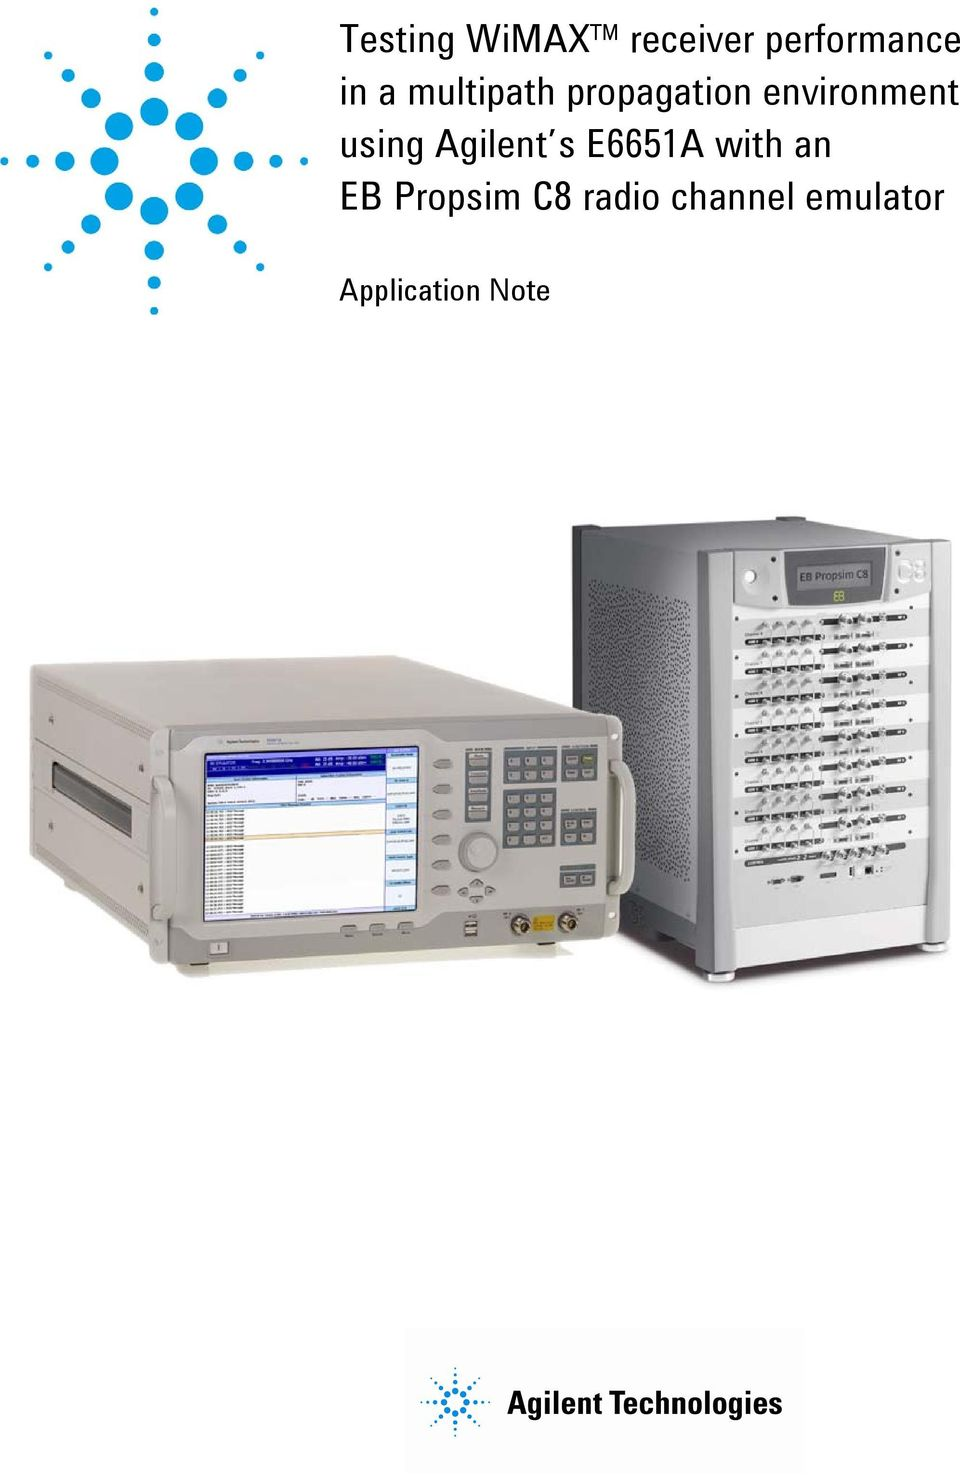 Agilent s E6651A with an EB Propsim C8